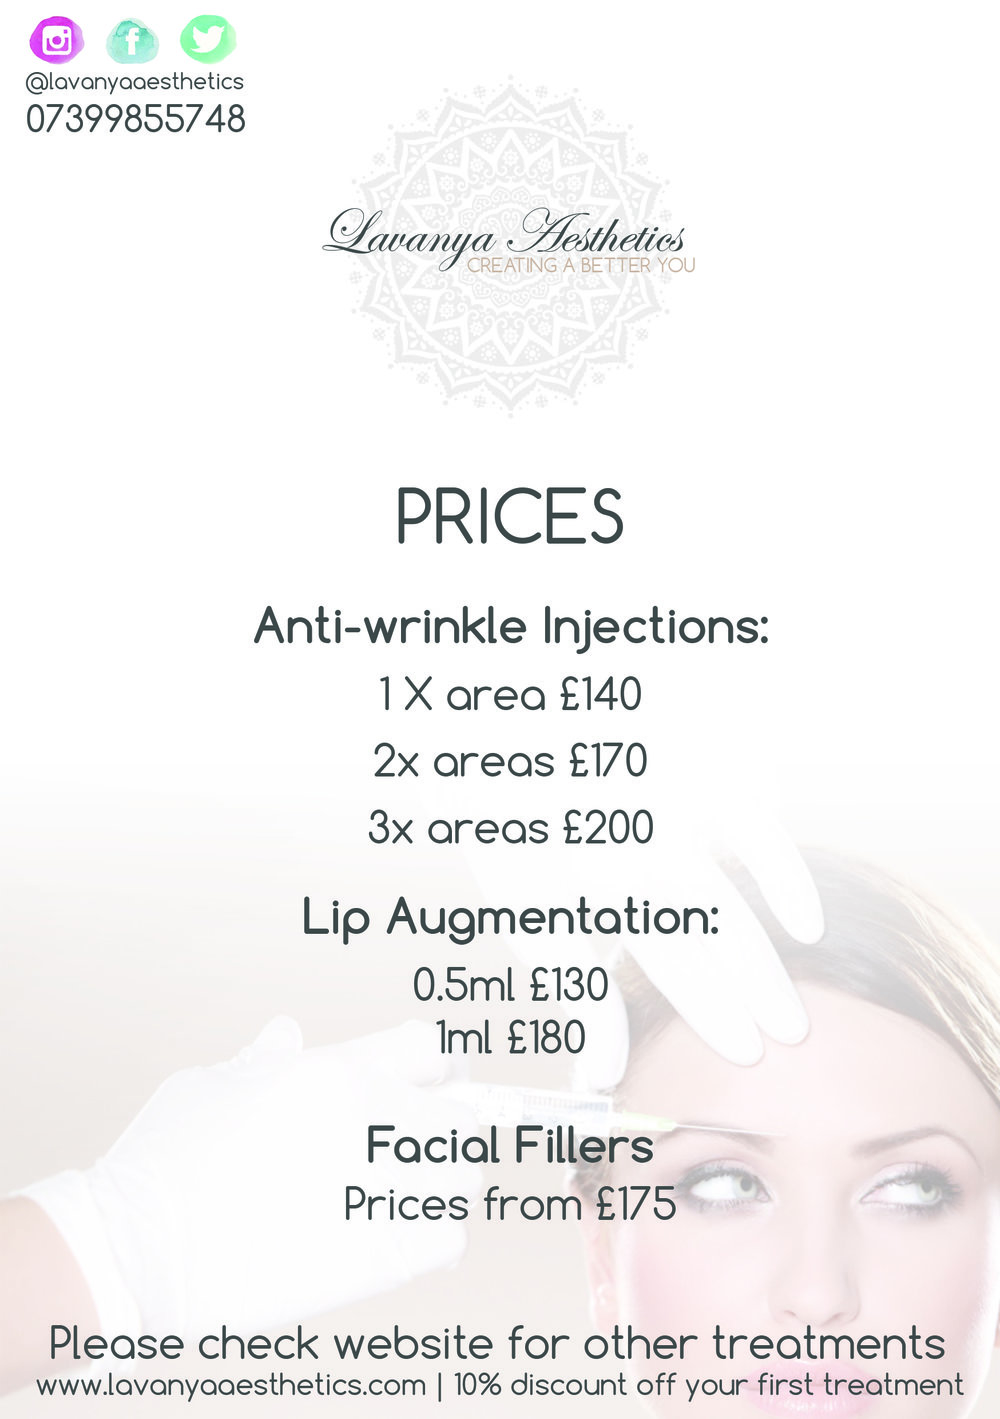 Lavanya Aesthetics A5 Promotional Flyer